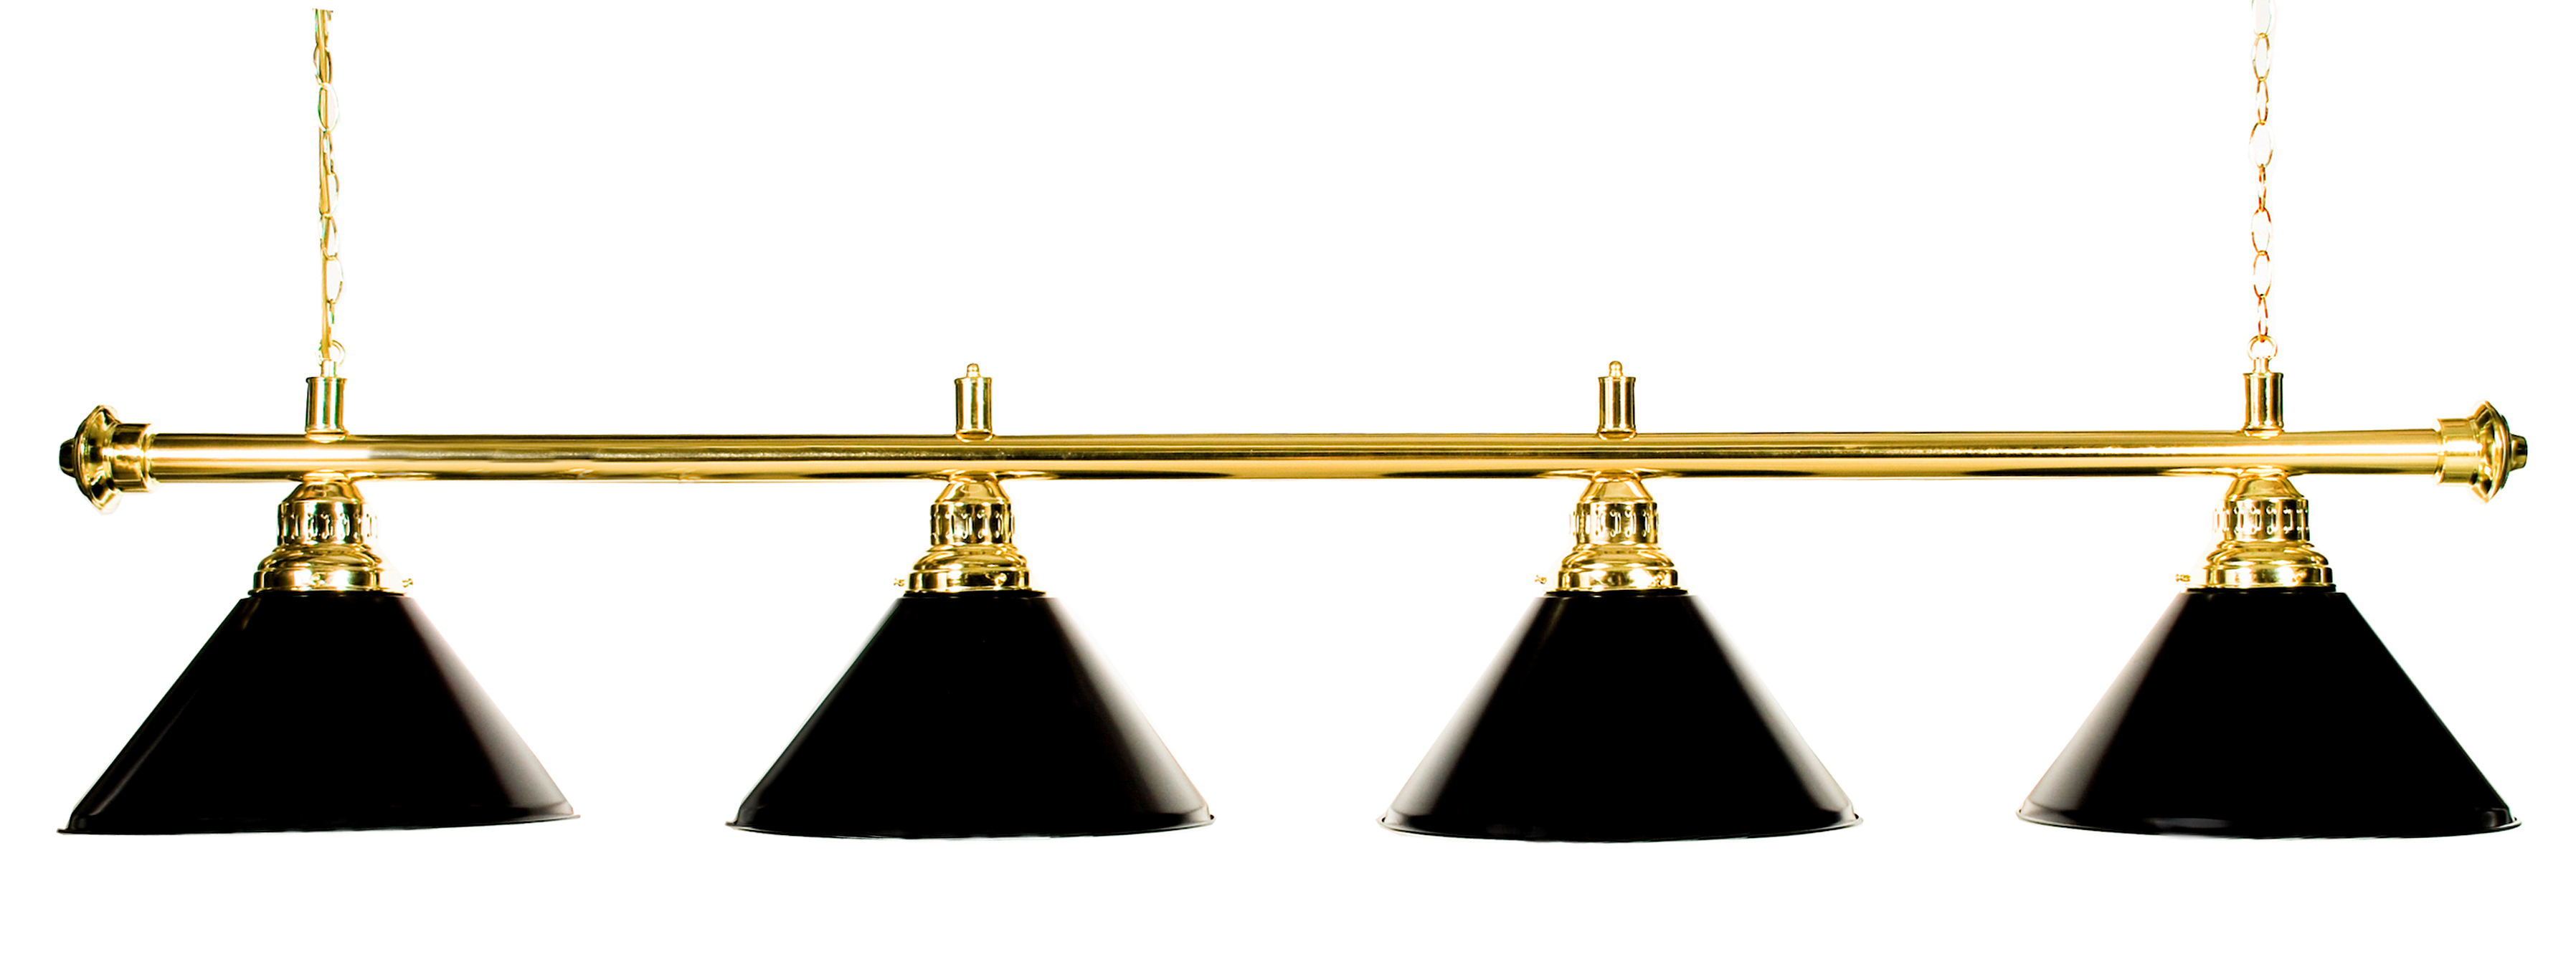 "72"" Pool Table Light Pool Table Light With Metal Black Shades for 9' Table by"